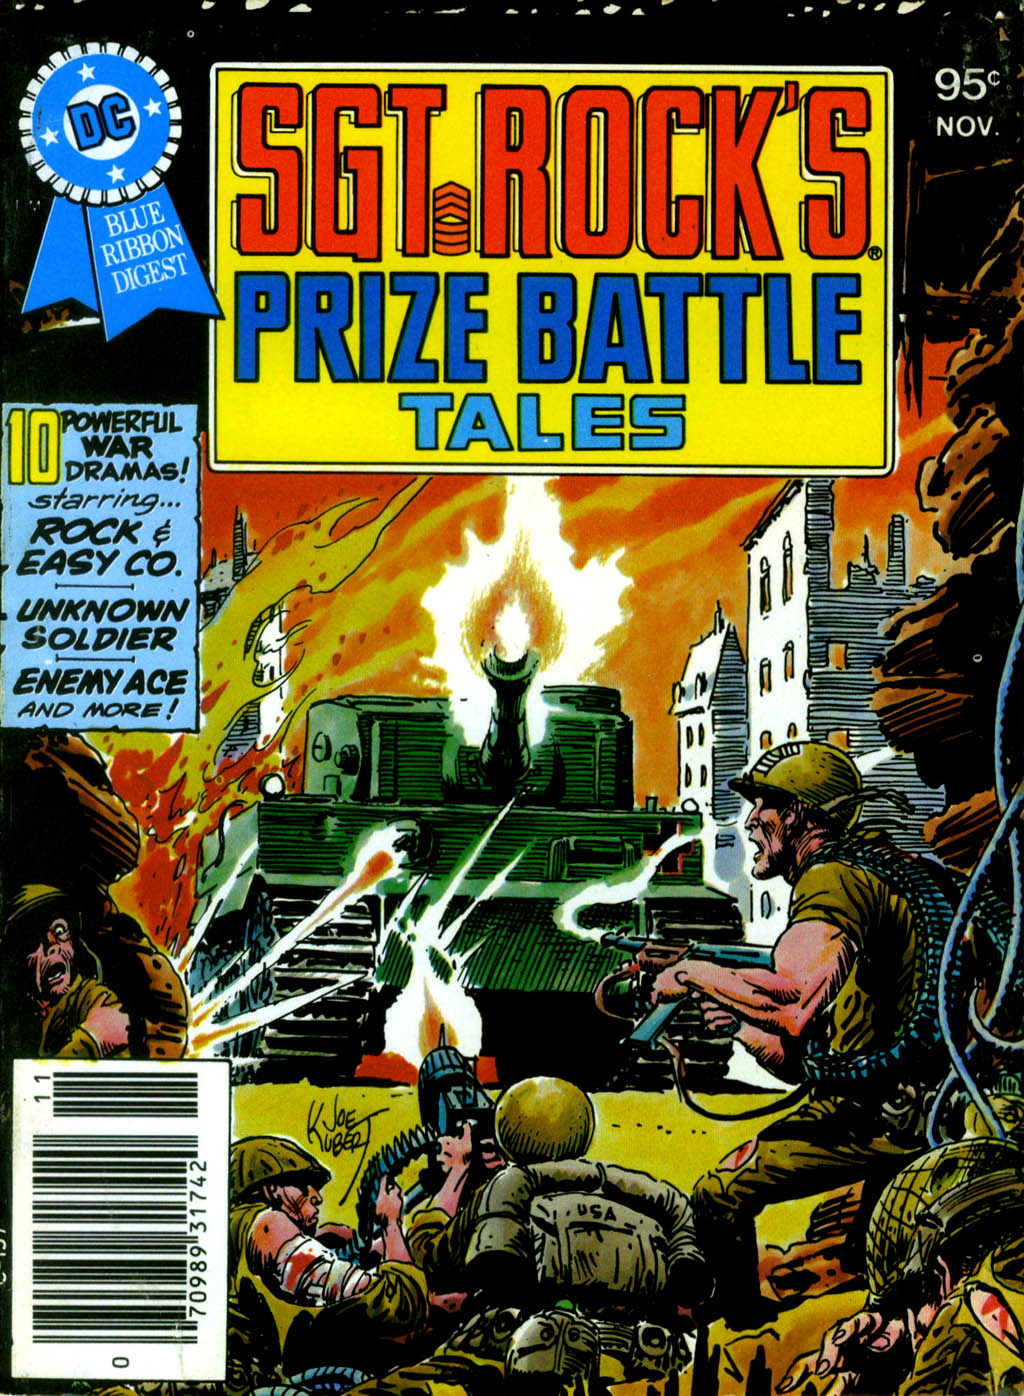 DC SPECIAL SERIES #18: SGT. ROCK'S PRIZE BATTLE TALES cover by Joe Kubert